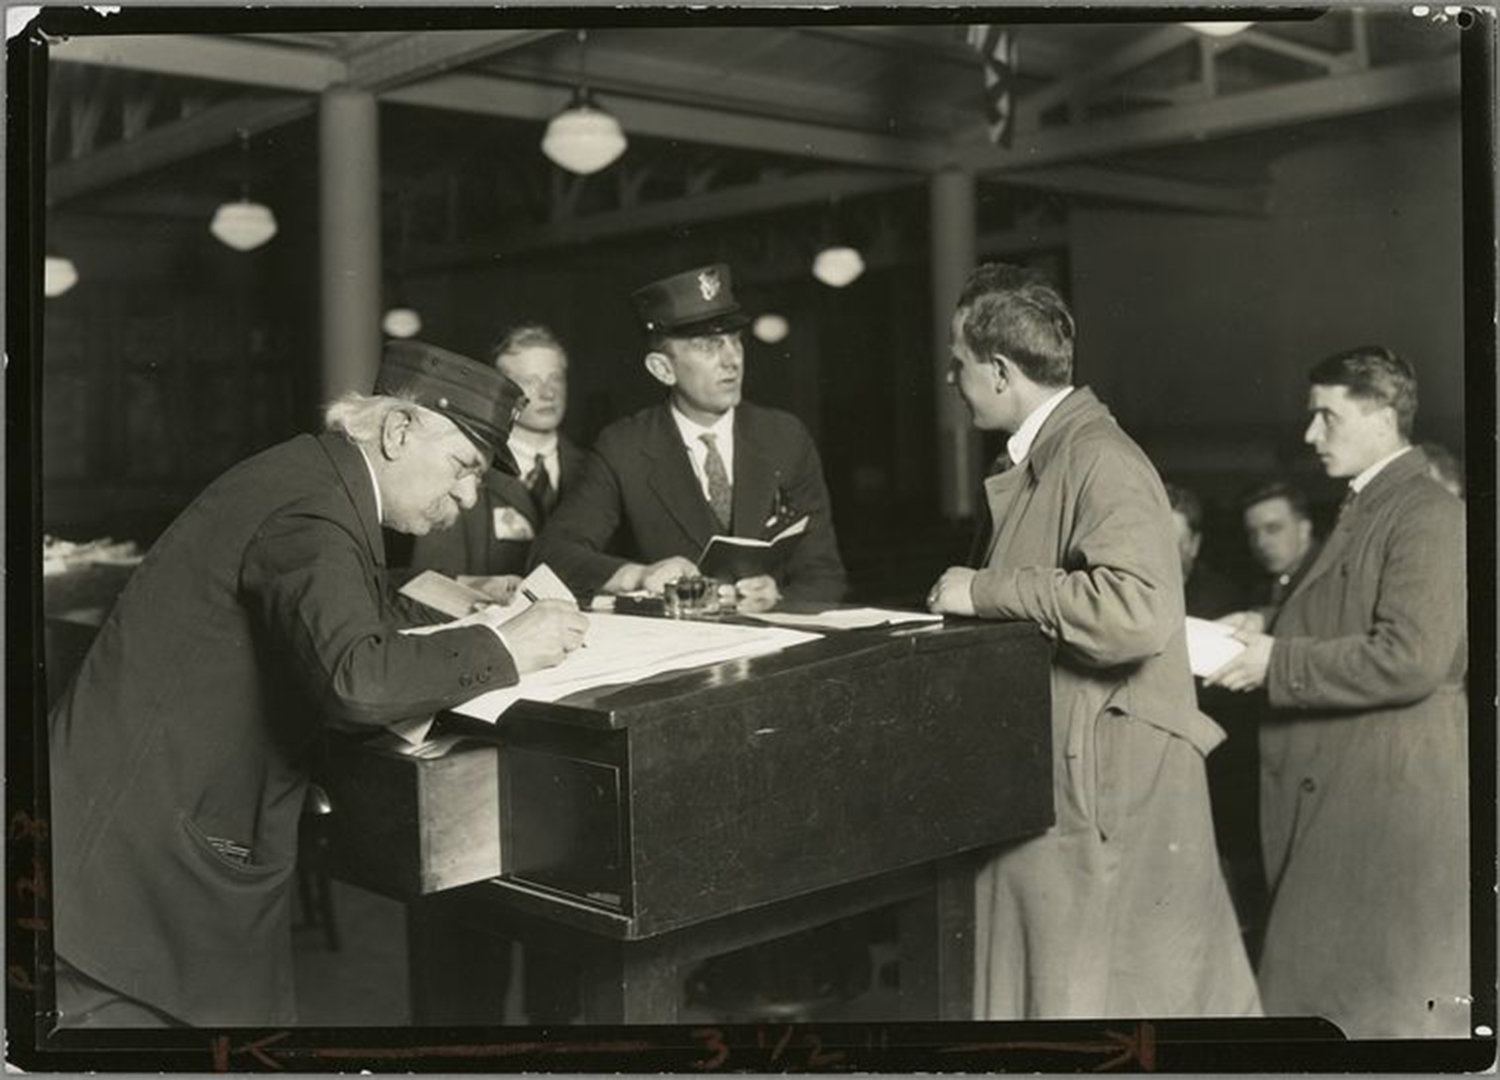 Interpreter and recorder interviewing newcomers, Ellis Island, New York, Hine, Lewis Wickes 1908, NYPL Digital Gallery, Public Domain Mark